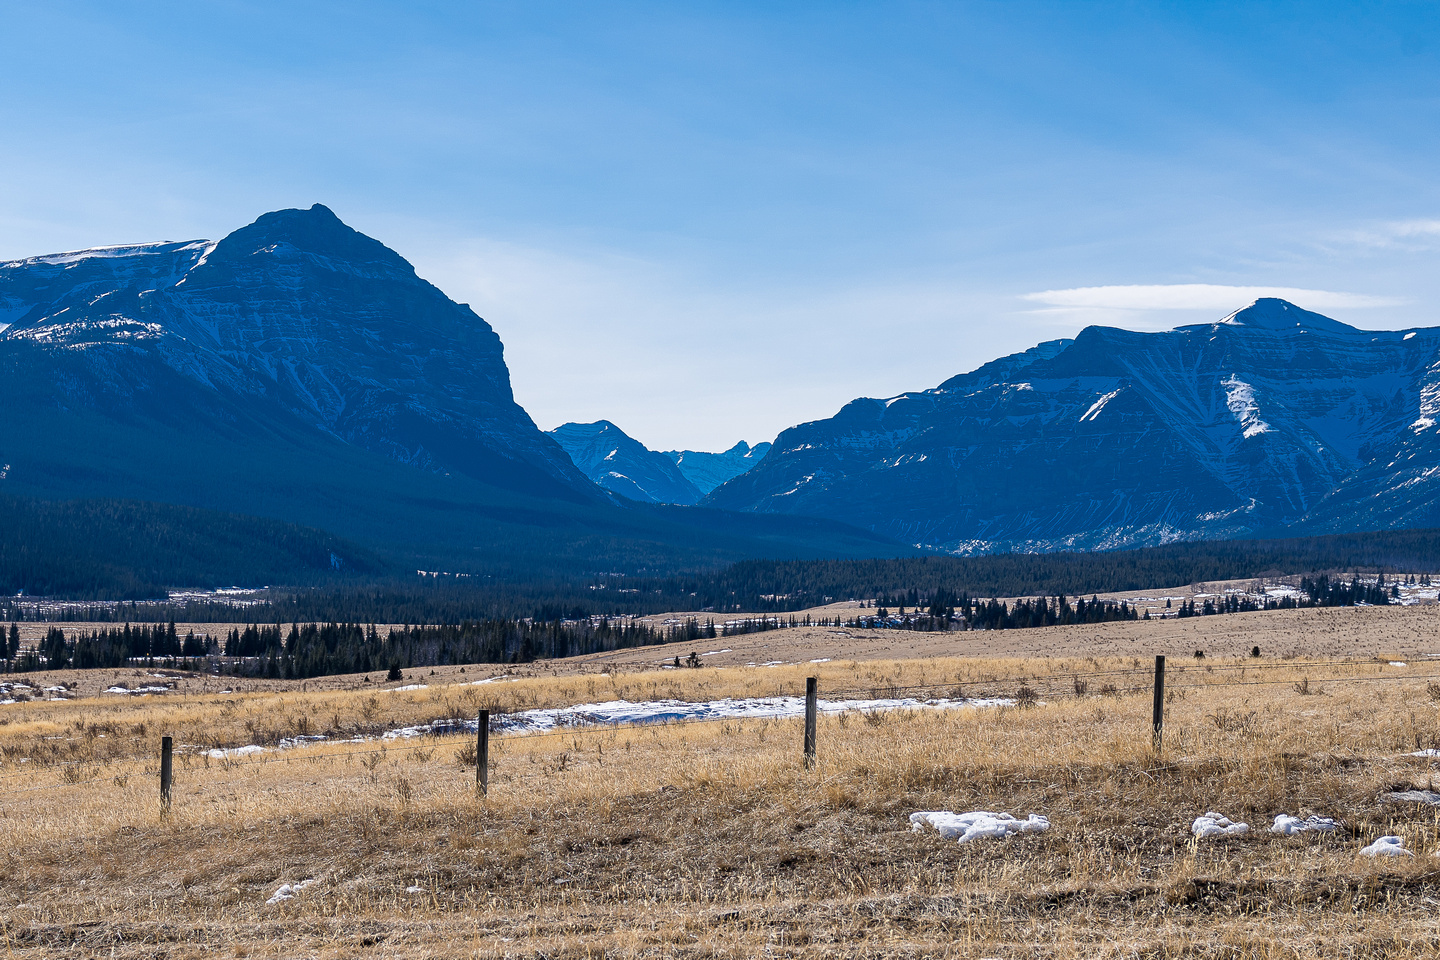 A last look at the Red Deer River gap between Warden Rock and Wapiti Mountain.